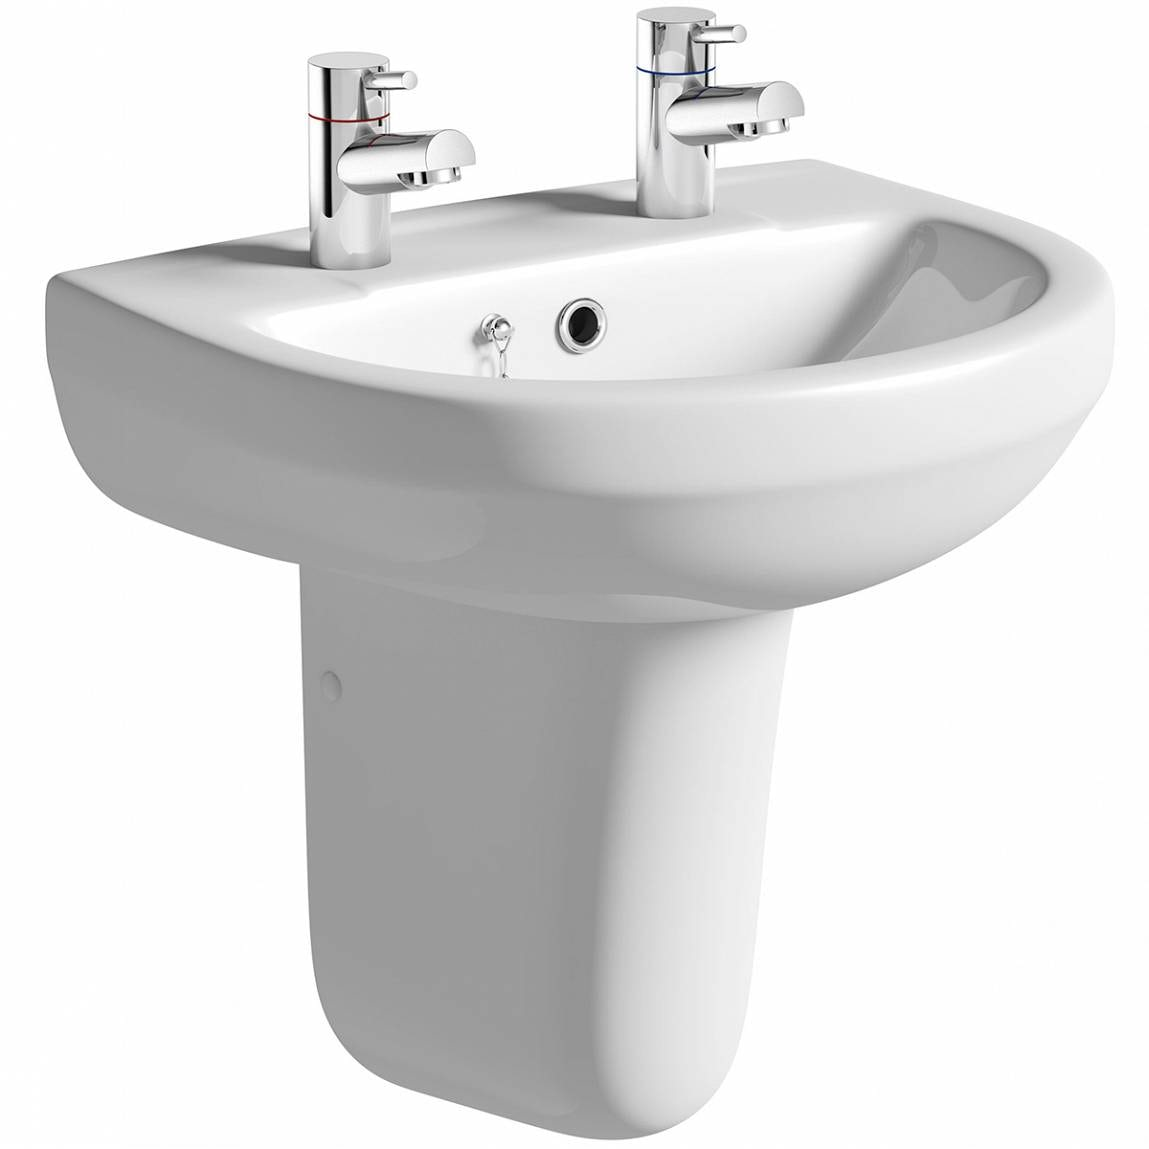 Orchard Wharfe 2 tap hole semi pedestal basin 550mm with waste